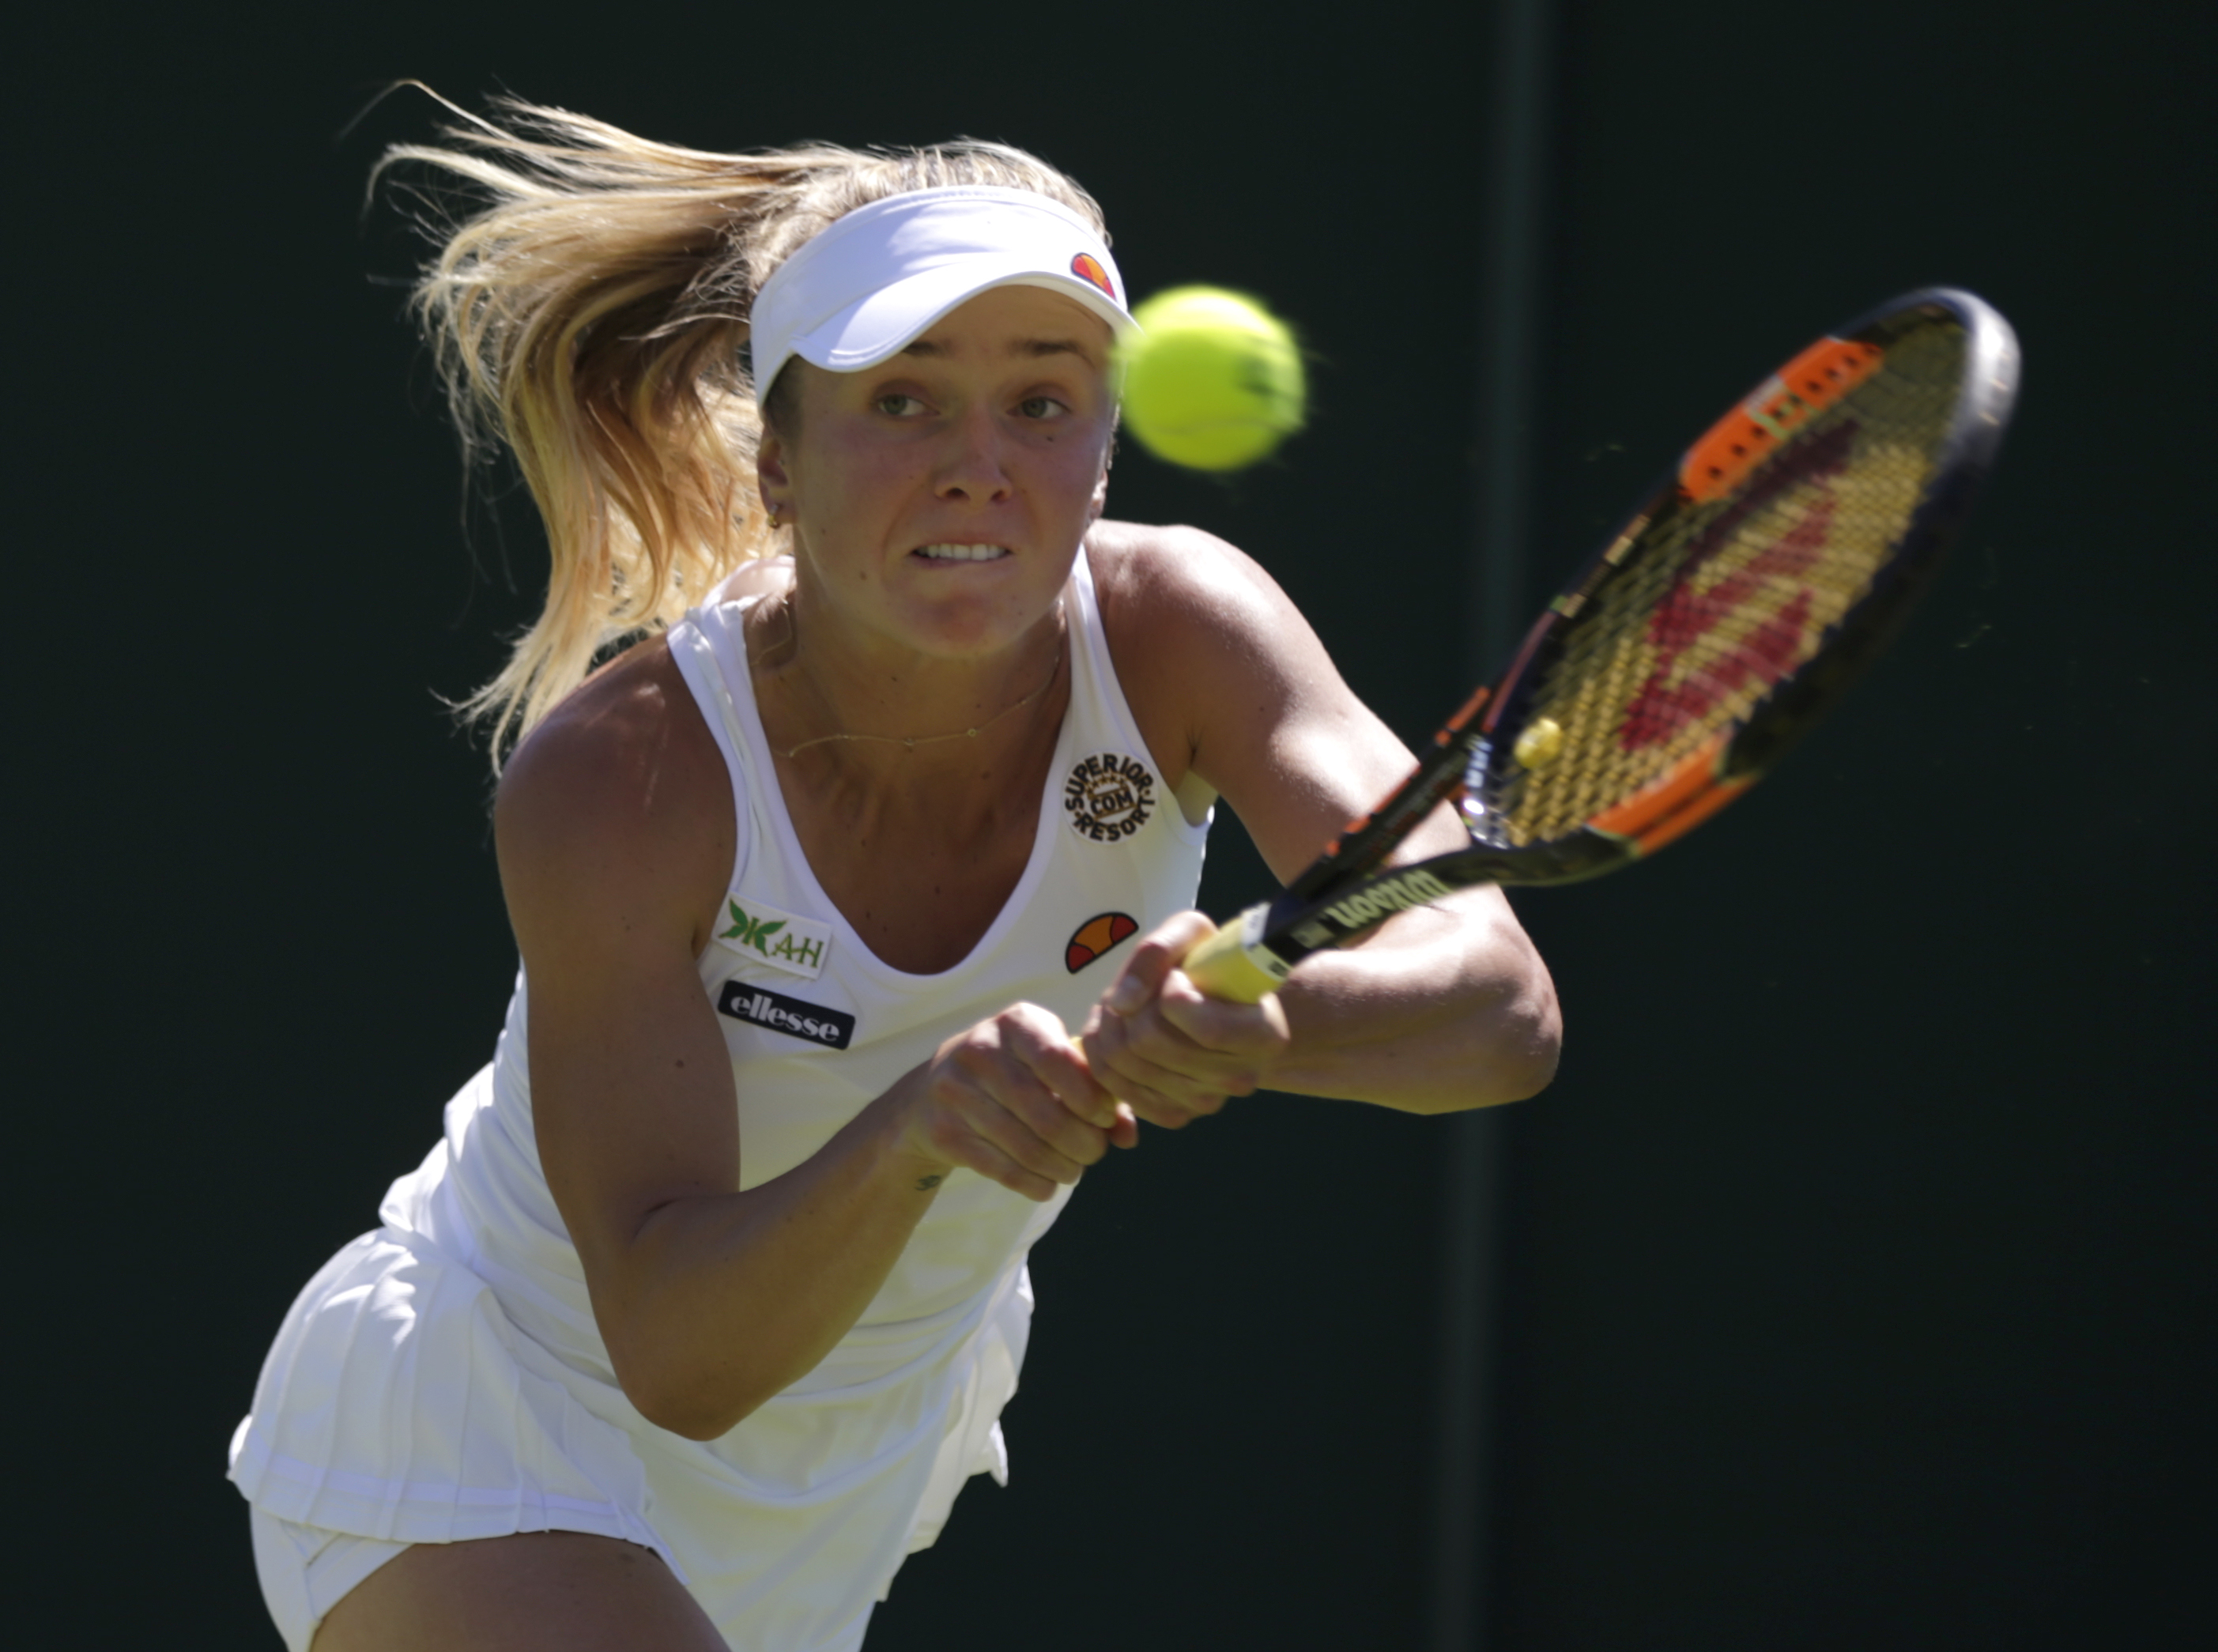 Elina Svitolina of the Ukraine plays a return to Misaki Doi of Japan during the women's singles first round match at the All England Lawn Tennis Championships in Wimbledon, London, Tuesday June 30, 2015. (AP Photo/Pavel Golovkin)